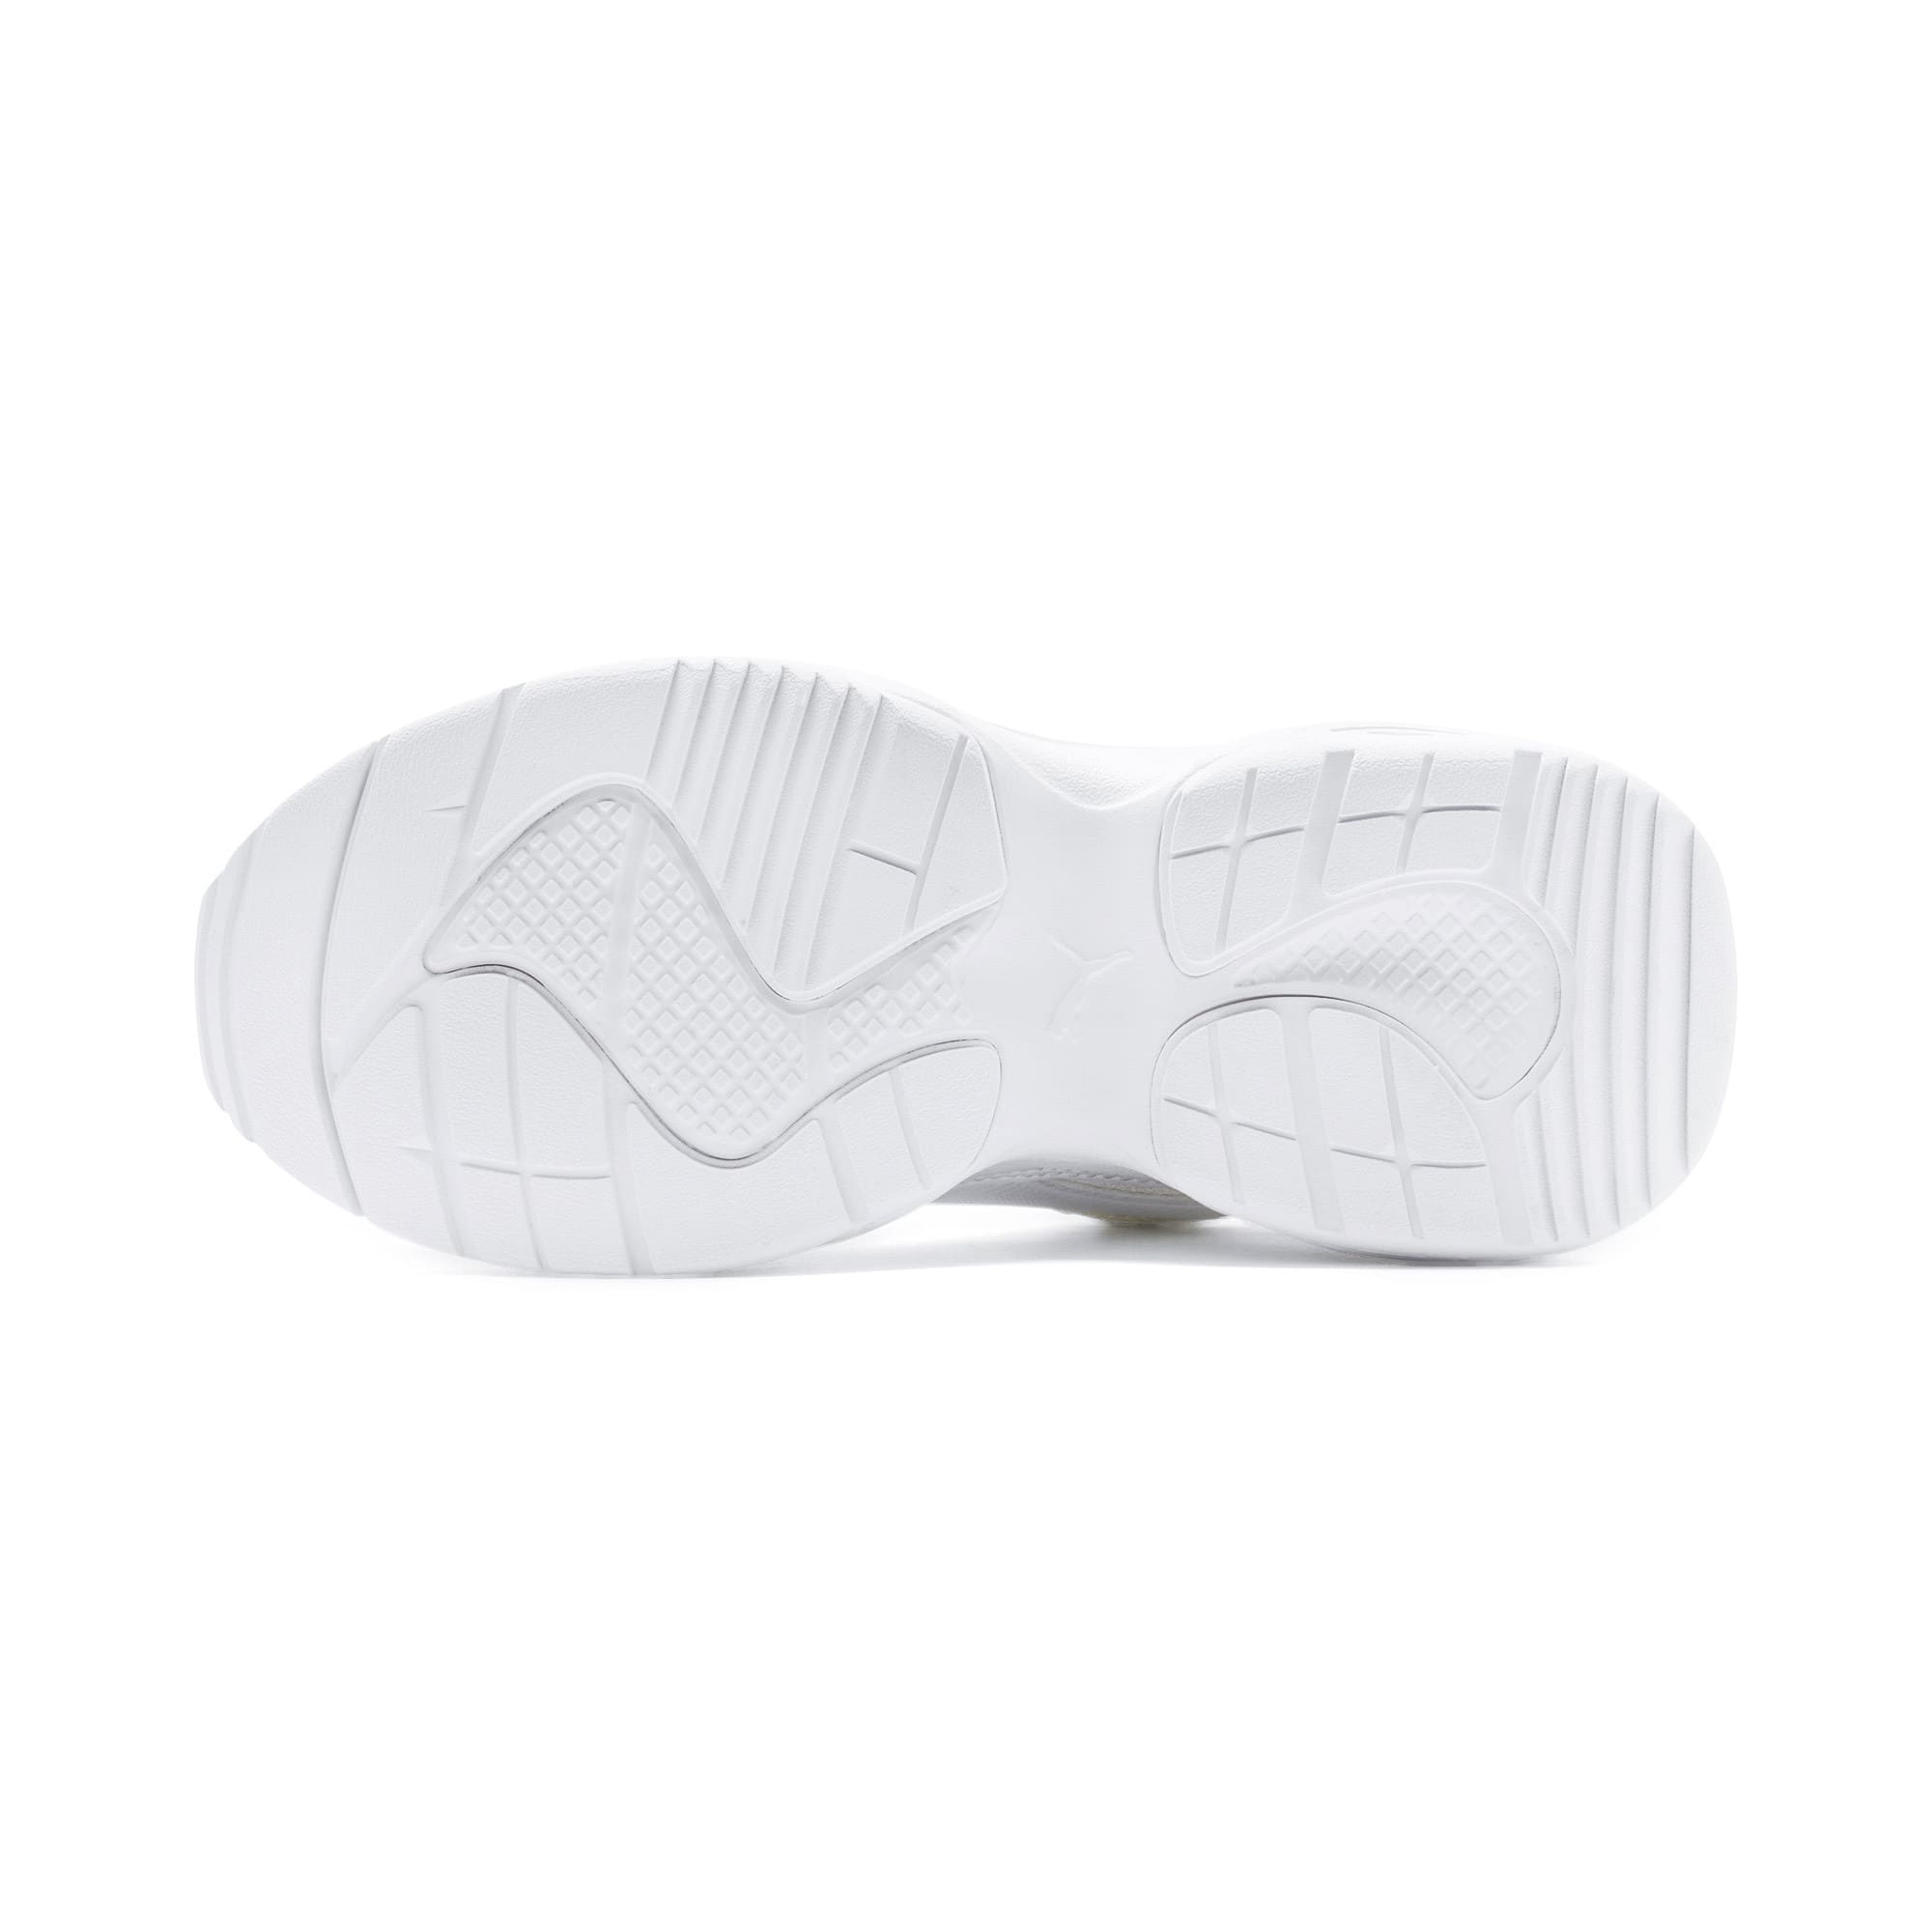 Thumbnail 4 of Cilia Youth Trainers, Puma White-Bridal Rose, medium